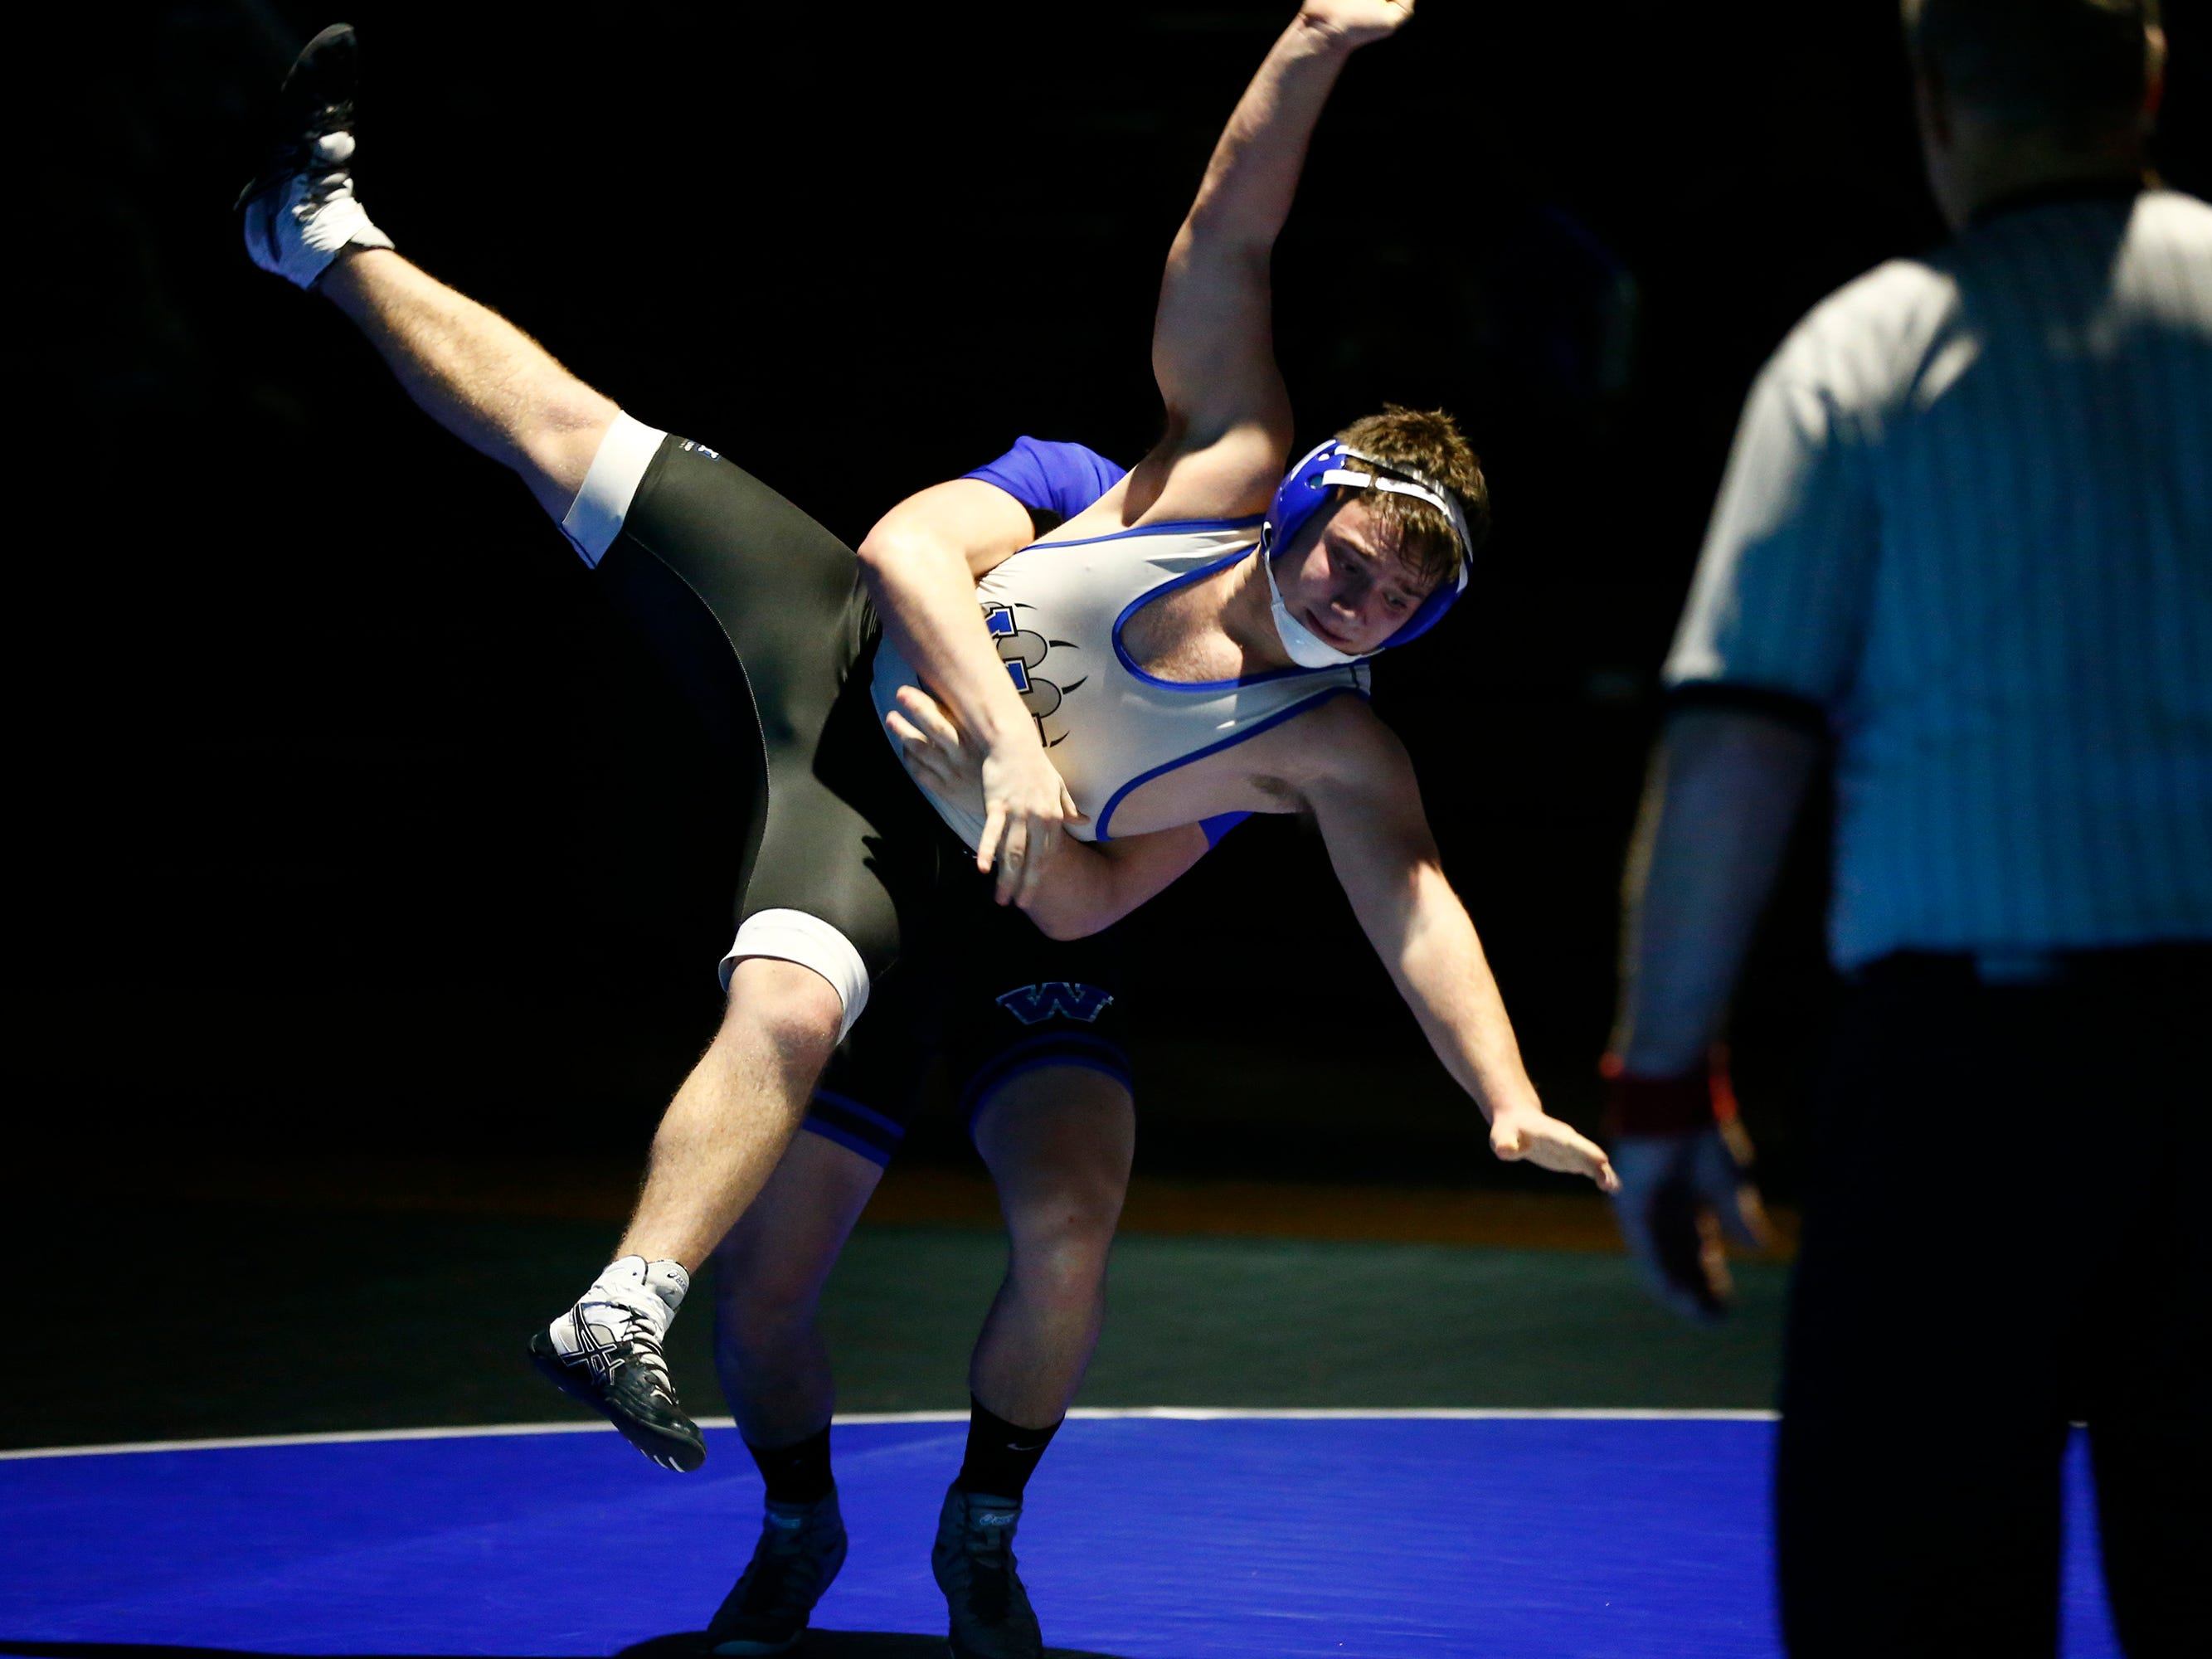 Waukesha West's Logan Anderson is thrown to the mat and pinned by Watertown's Dylan Sippel in a 170-pound match during a dual meet at West on Jan. 17.